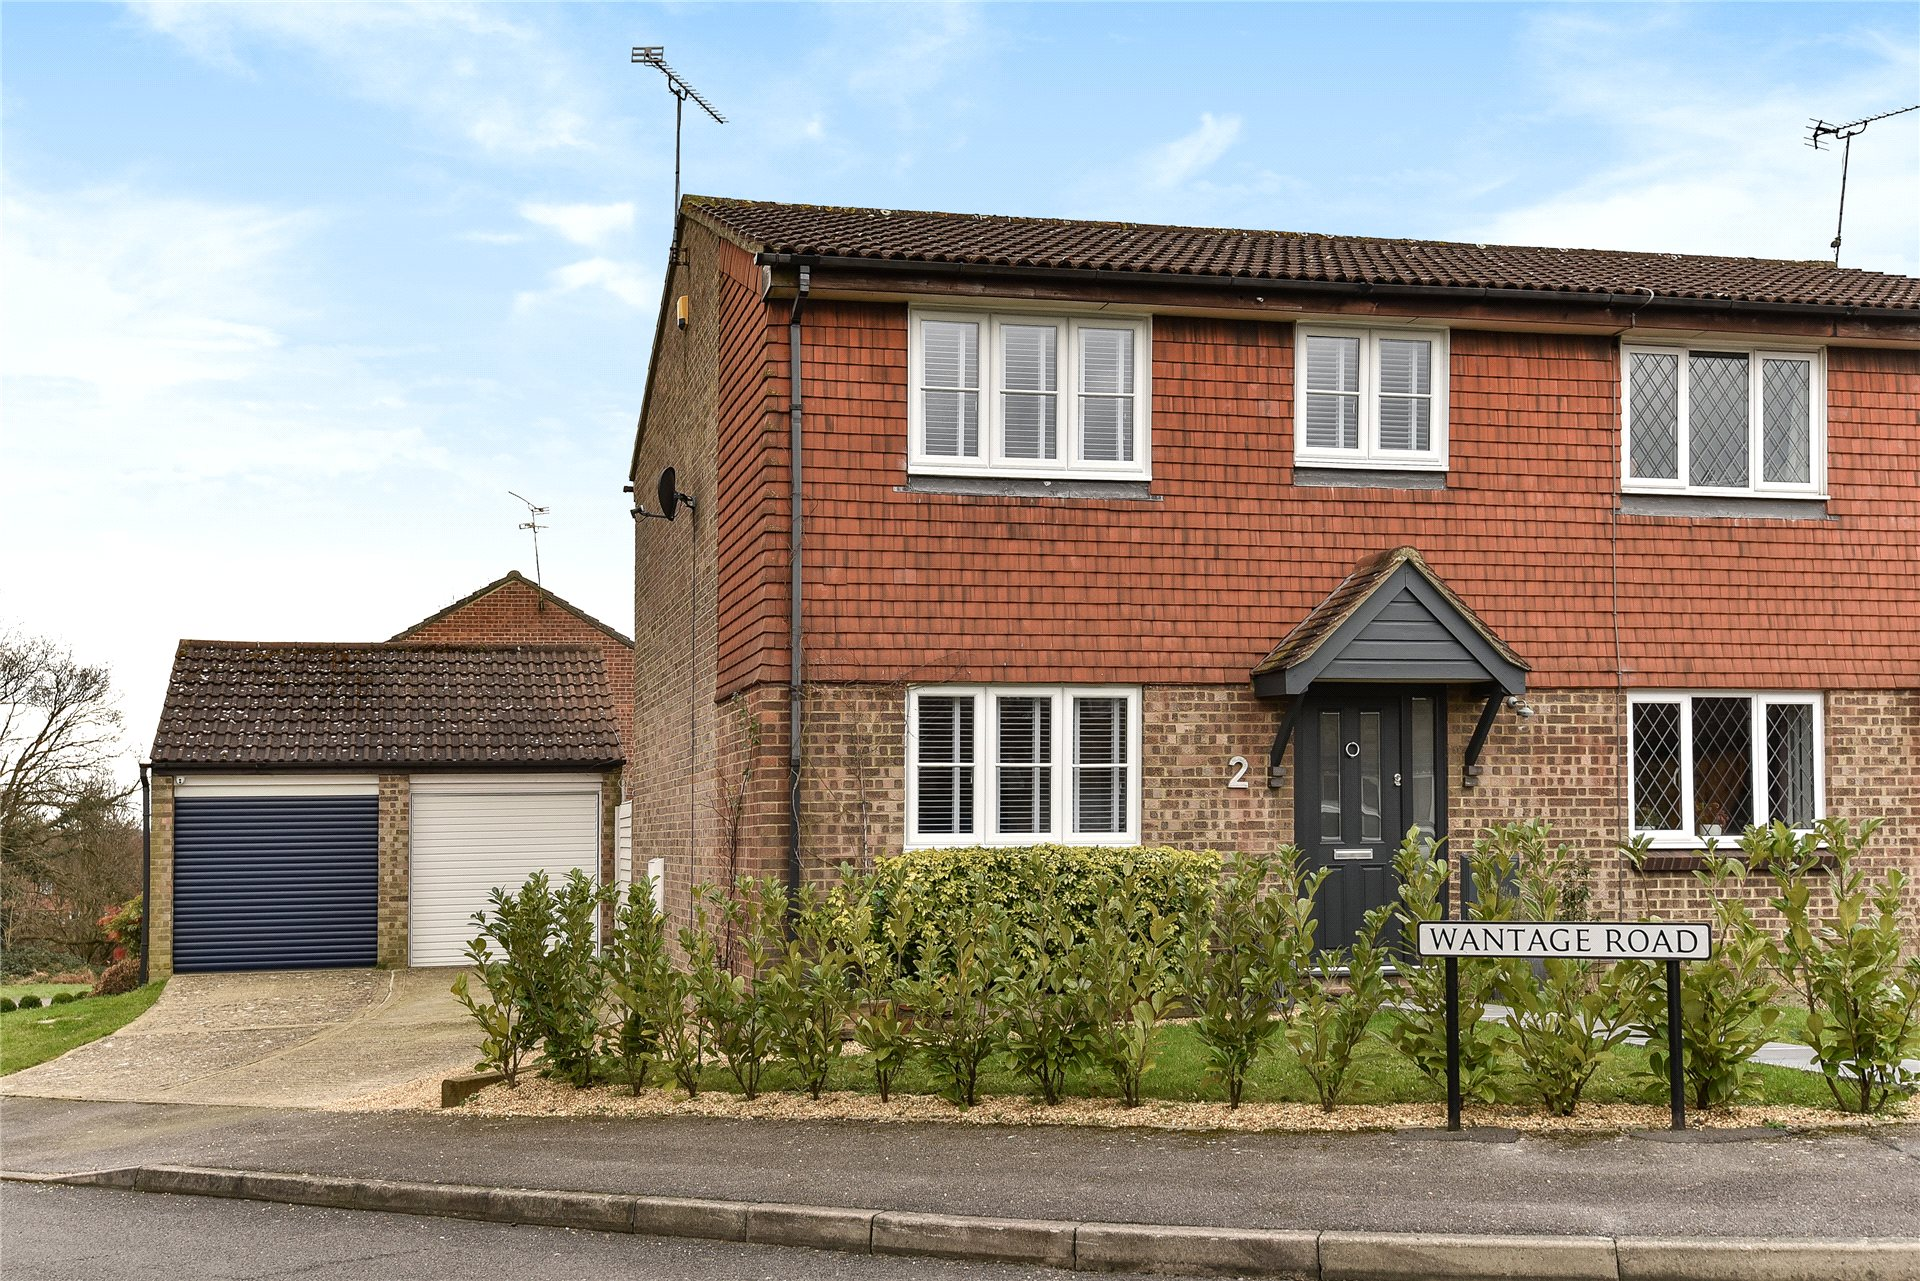 3 Bedrooms Semi Detached House for sale in Wantage Road, College Town, Sandhurst, Berkshire, GU47